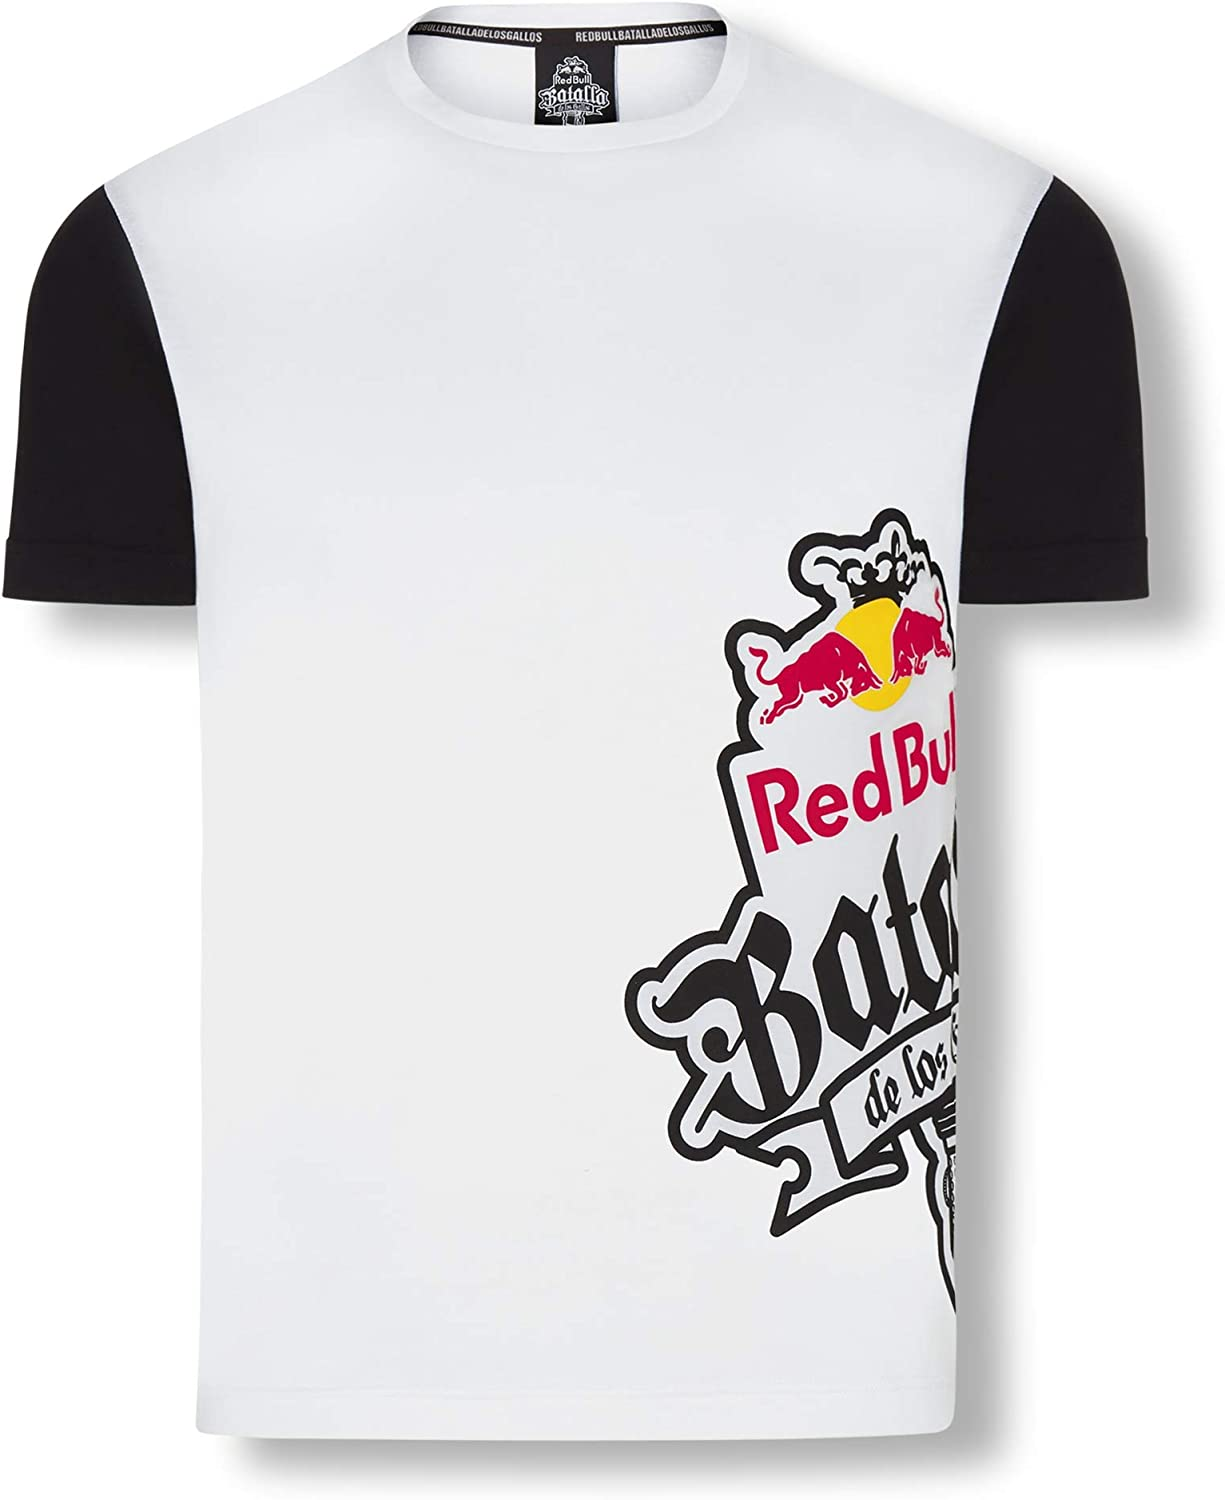 Red Bull Batalla Sideprint Camiseta, Blanco Hombre X-Large Top ...